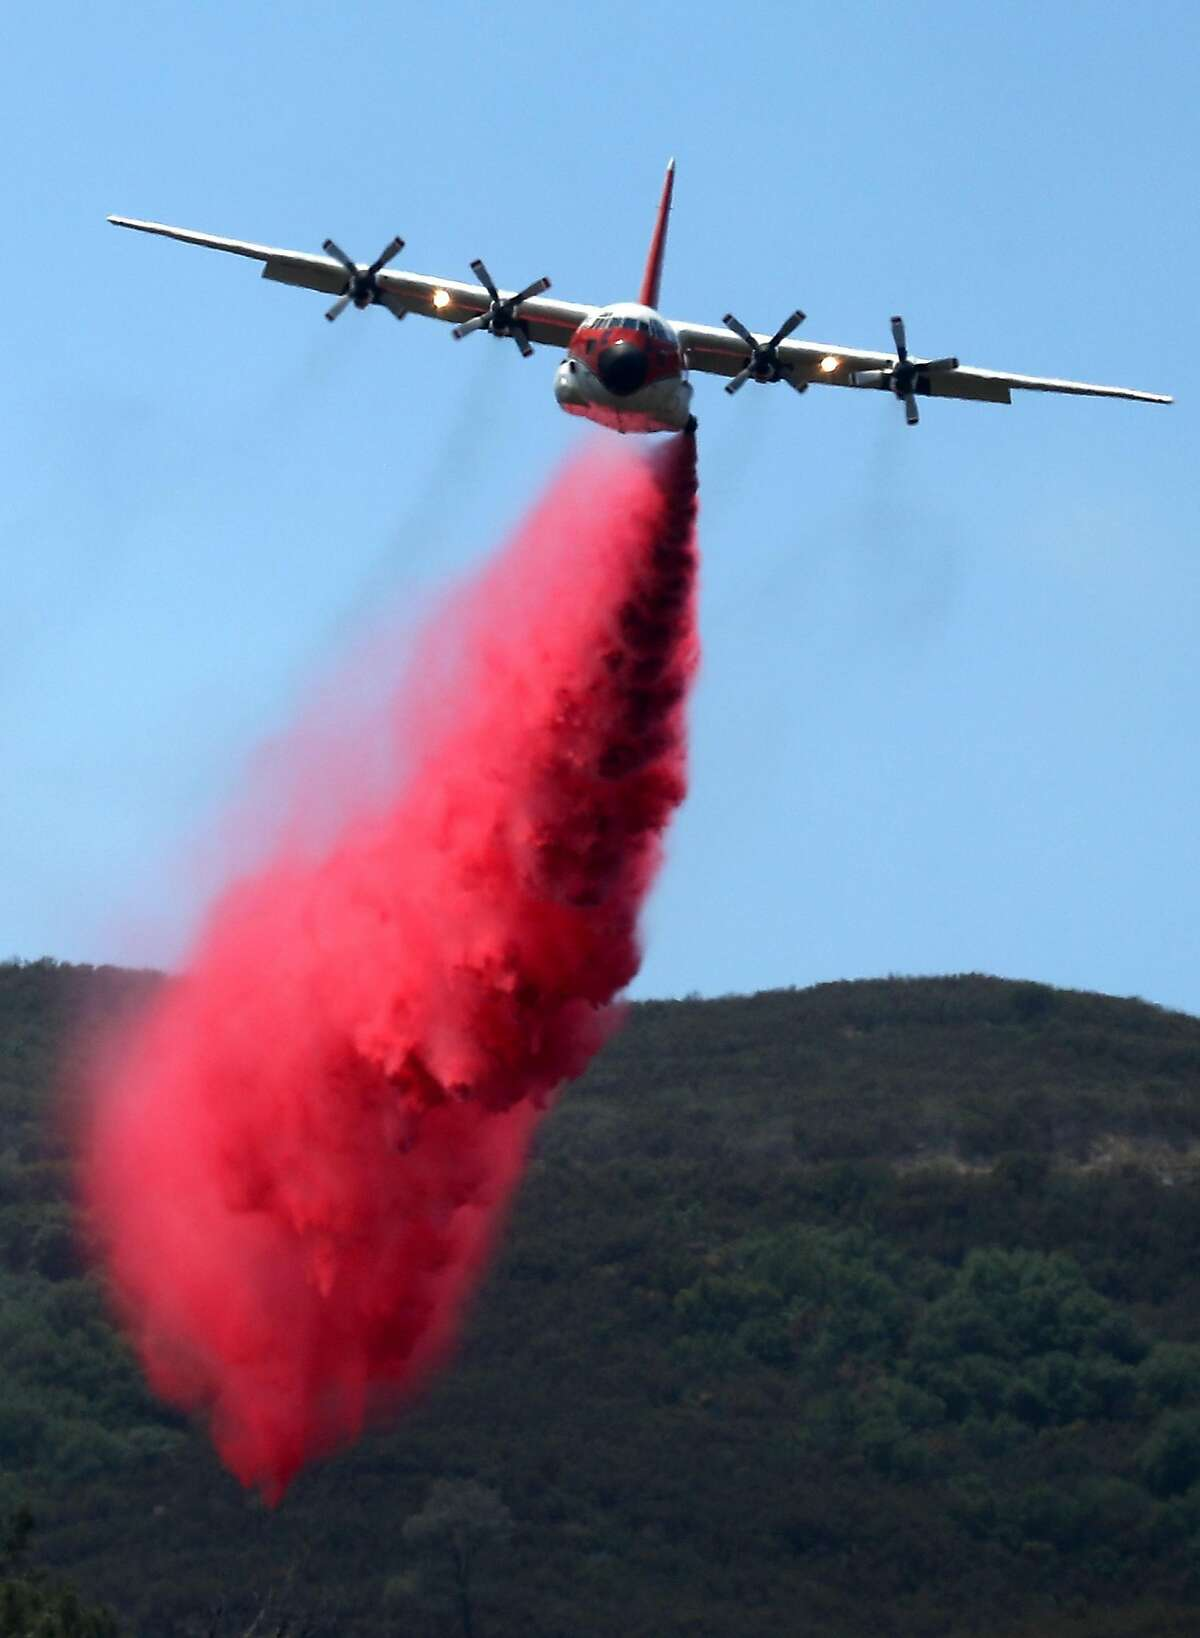 A firefighting air tanker drops Foscheck fire retardant on a hillside ahead of the County Fire on July 2, 2018 in Guinda, California. The fast moving County Fire, that started on Saturday afternoon, has scorched nearly 45,000 acres as it continues to burn through dry grass and brush.